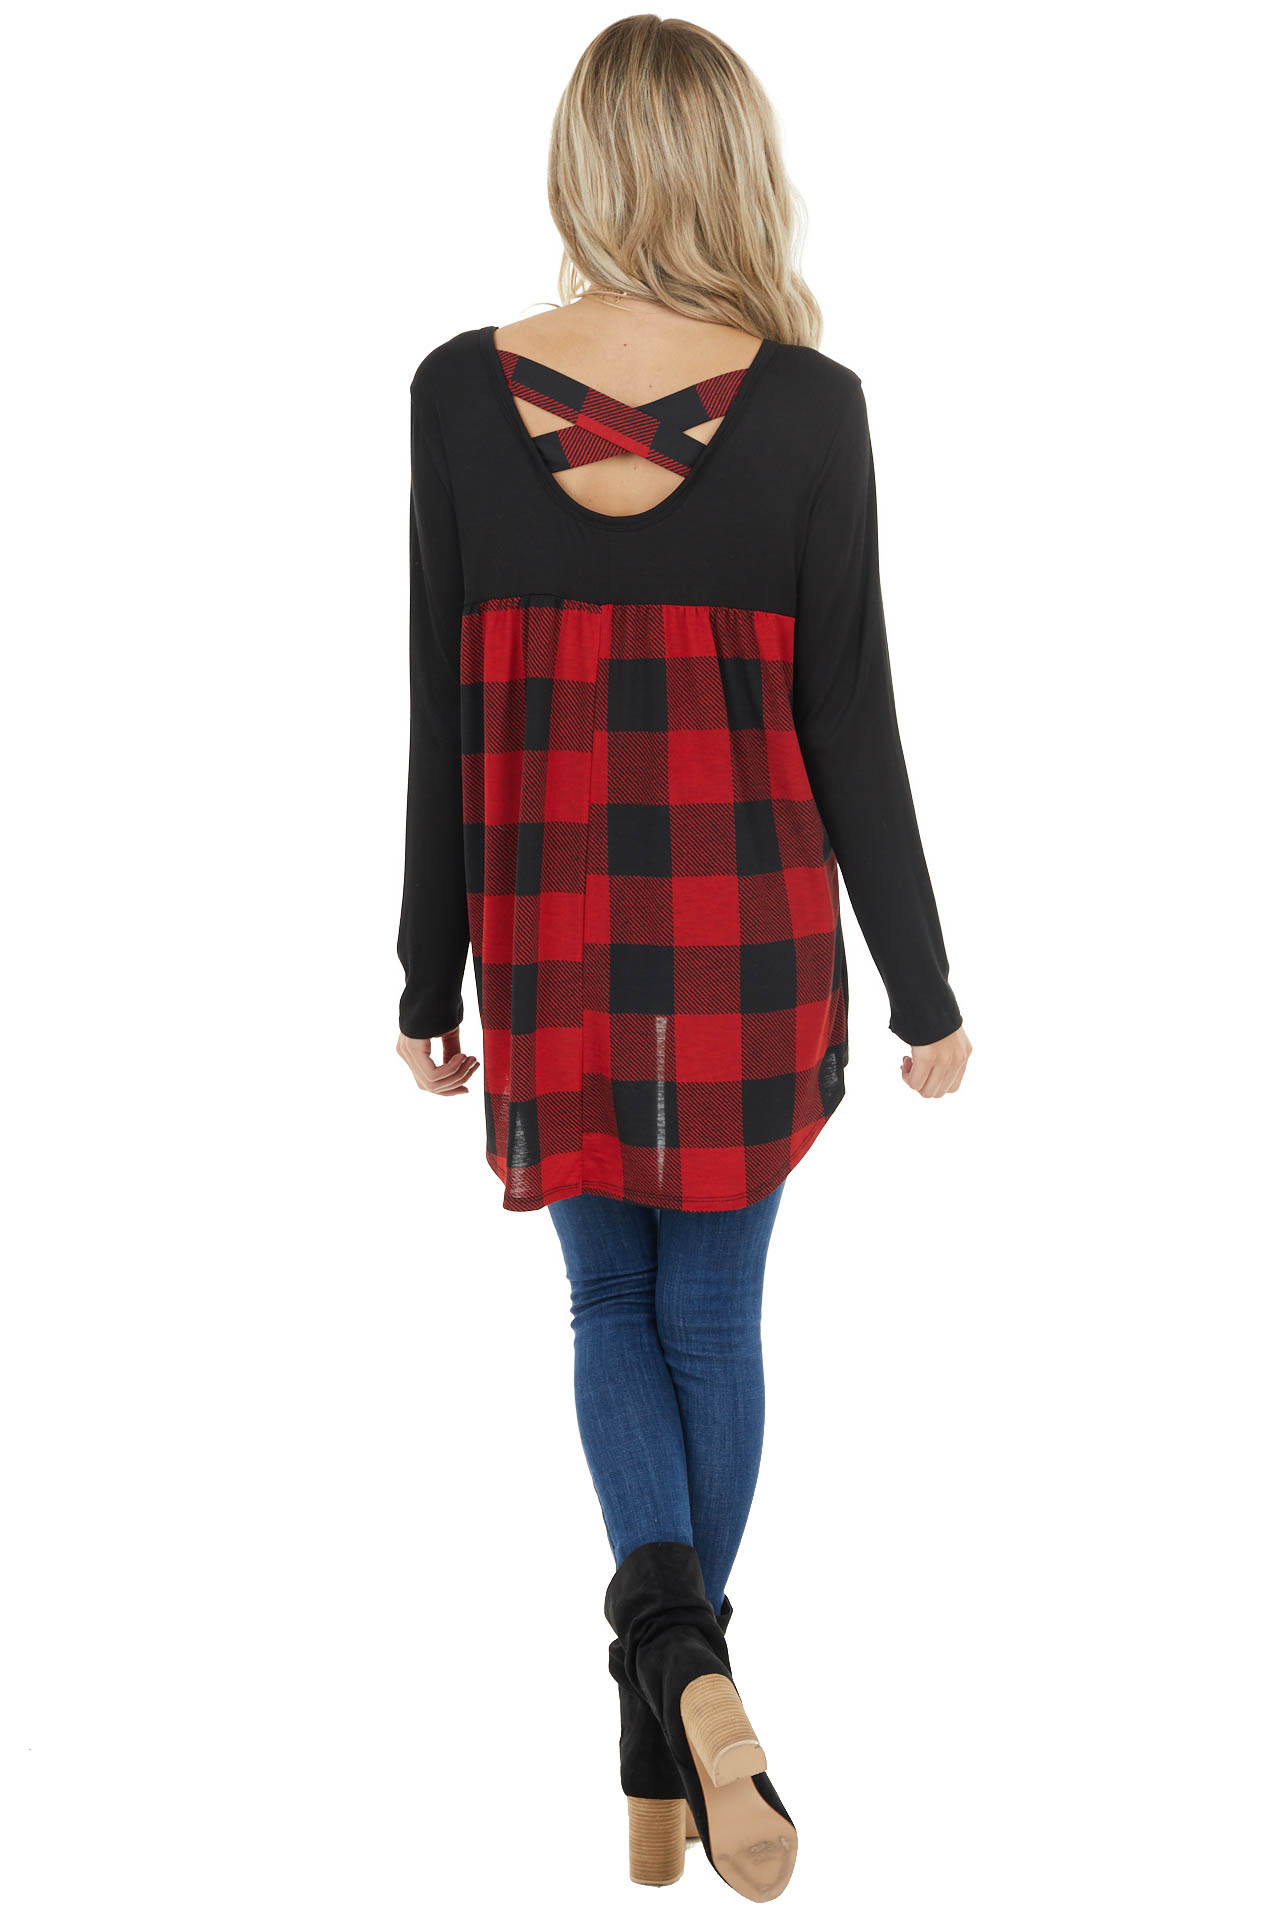 Black and Red Plaid Back Top with Criss Cross Detail